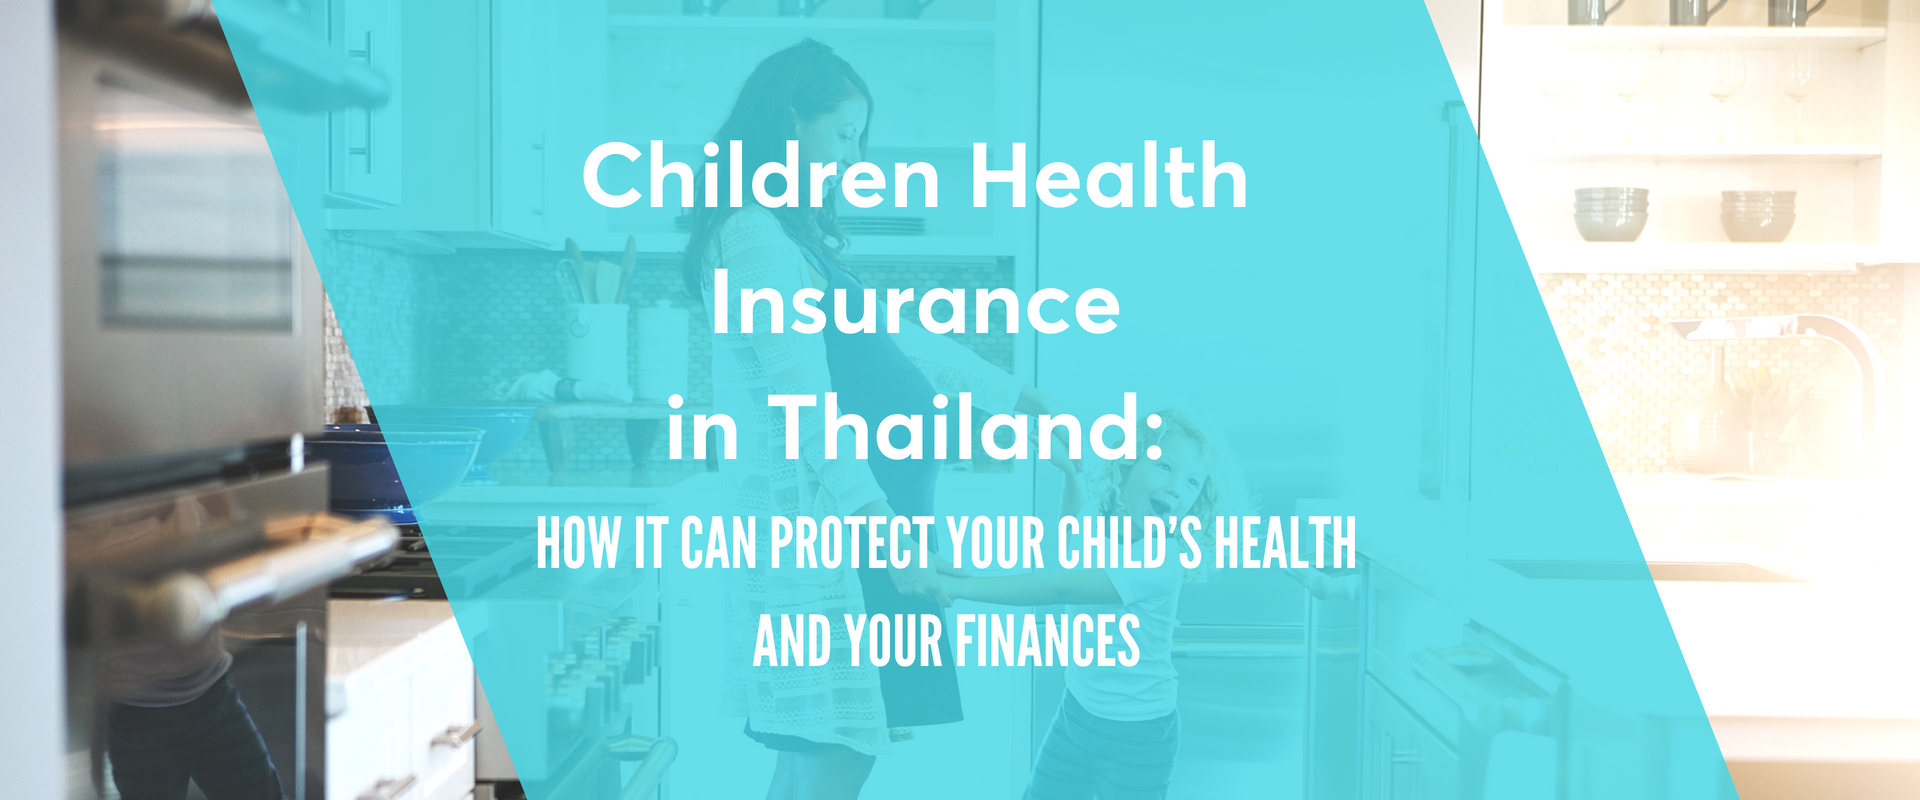 Children Health Insurance in Thailand - Banner (1)